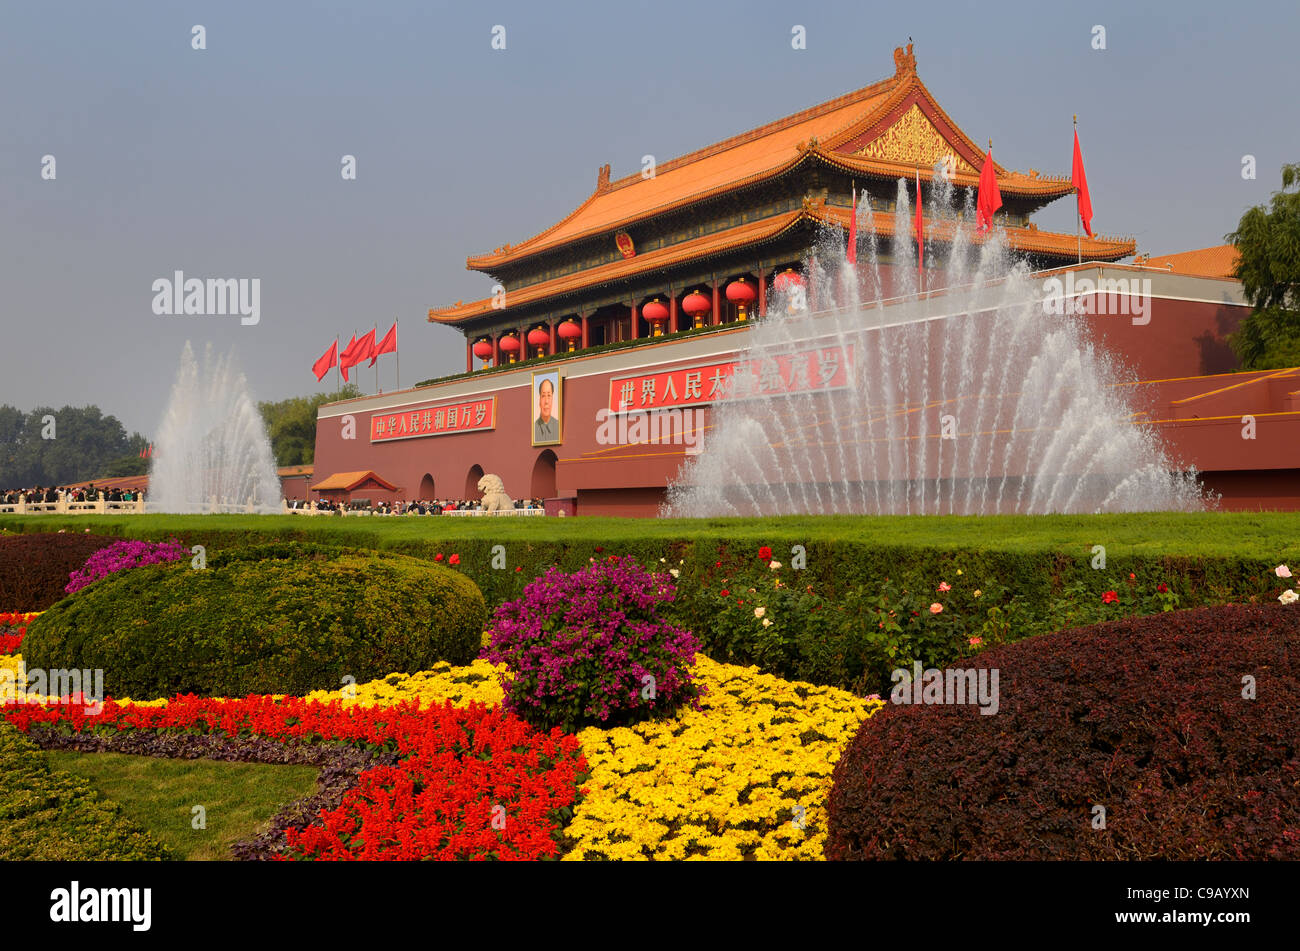 Flower garden and fountains at Tiananmen the Gate of Heavenly Peace Forbidden City Beijing Peoples Republic of China - Stock Image